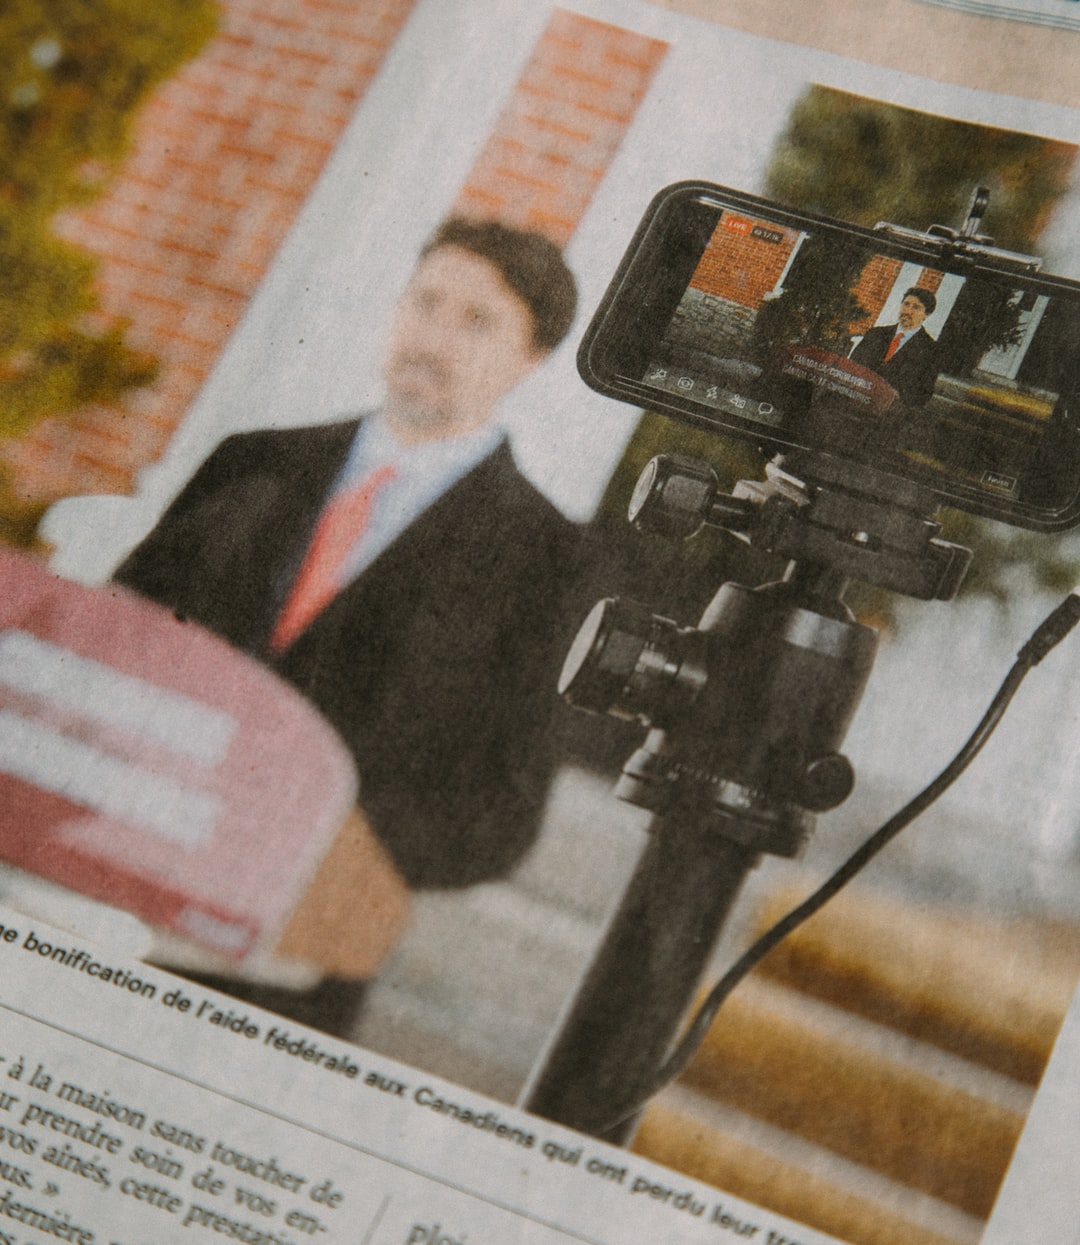 Trudeau addressing the Nation (Newspaper)